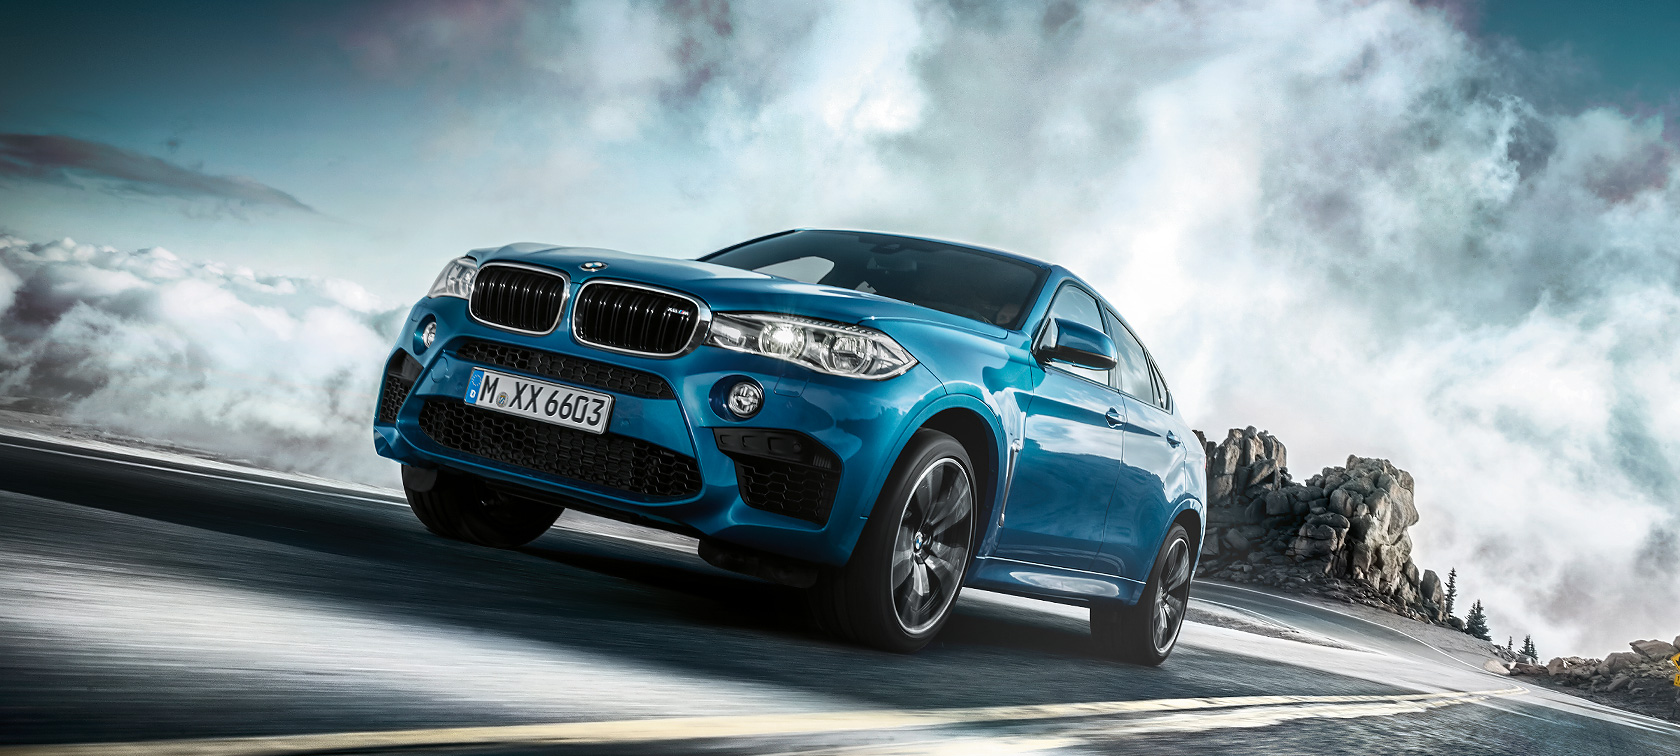 BMW X6M in metallic blue: frontside view uphill.